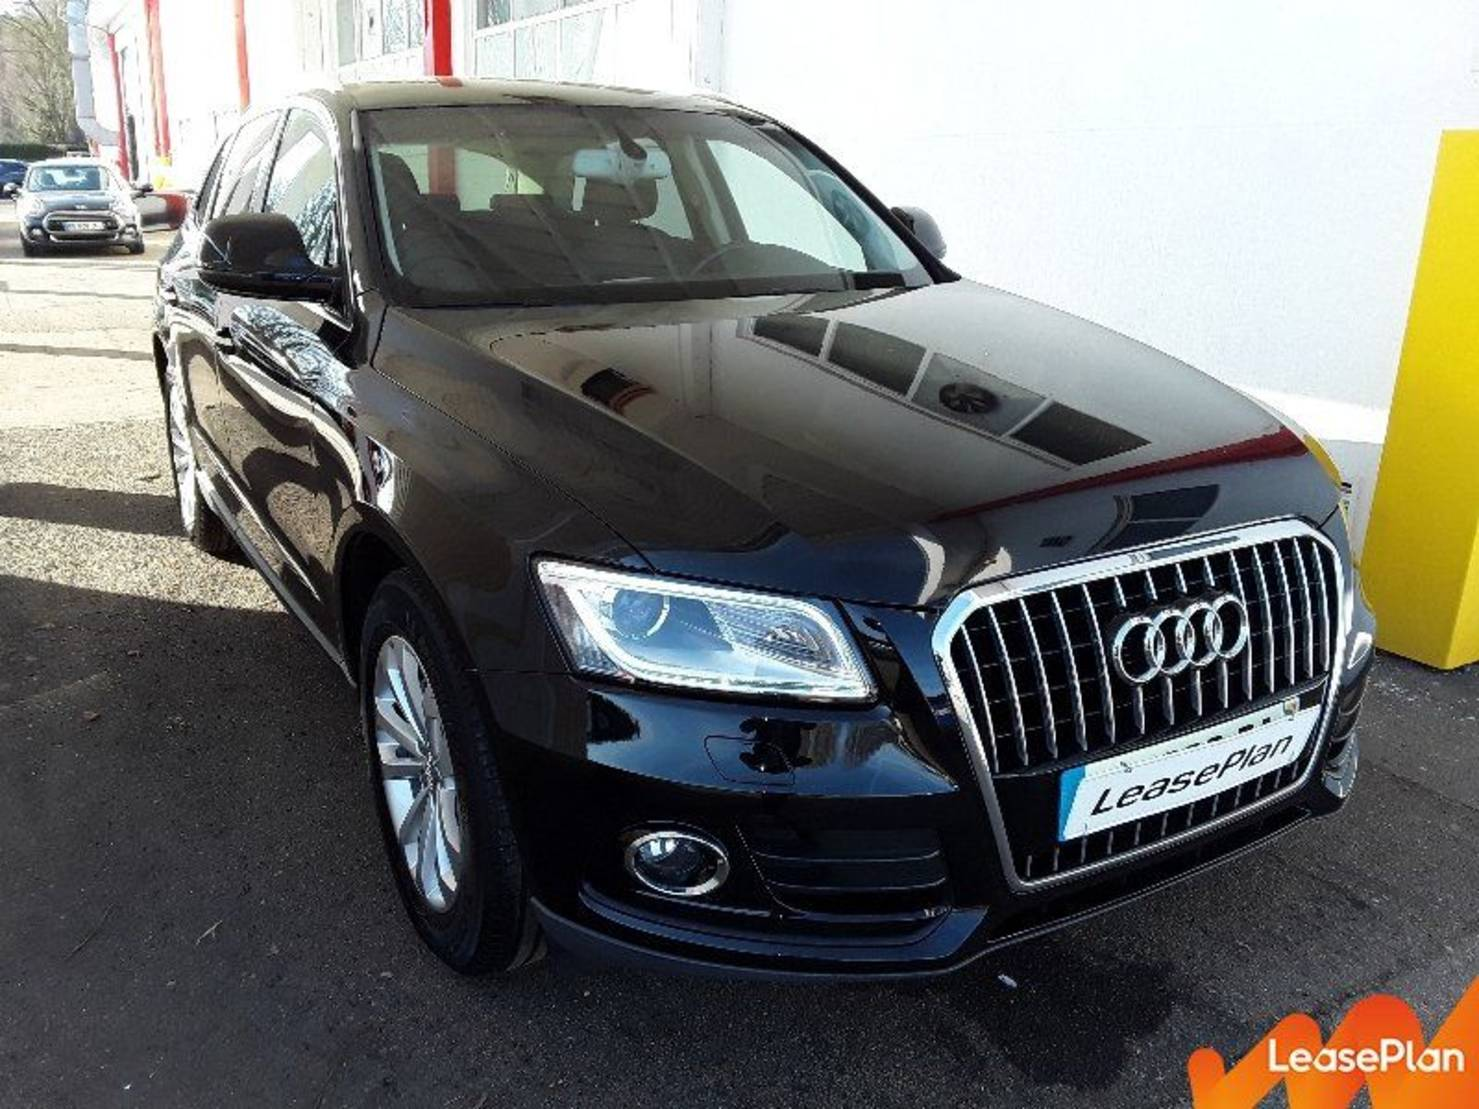 Audi Q5 2.0 TDI Ultra Clean Diesel 150, Ambition Luxe detail1